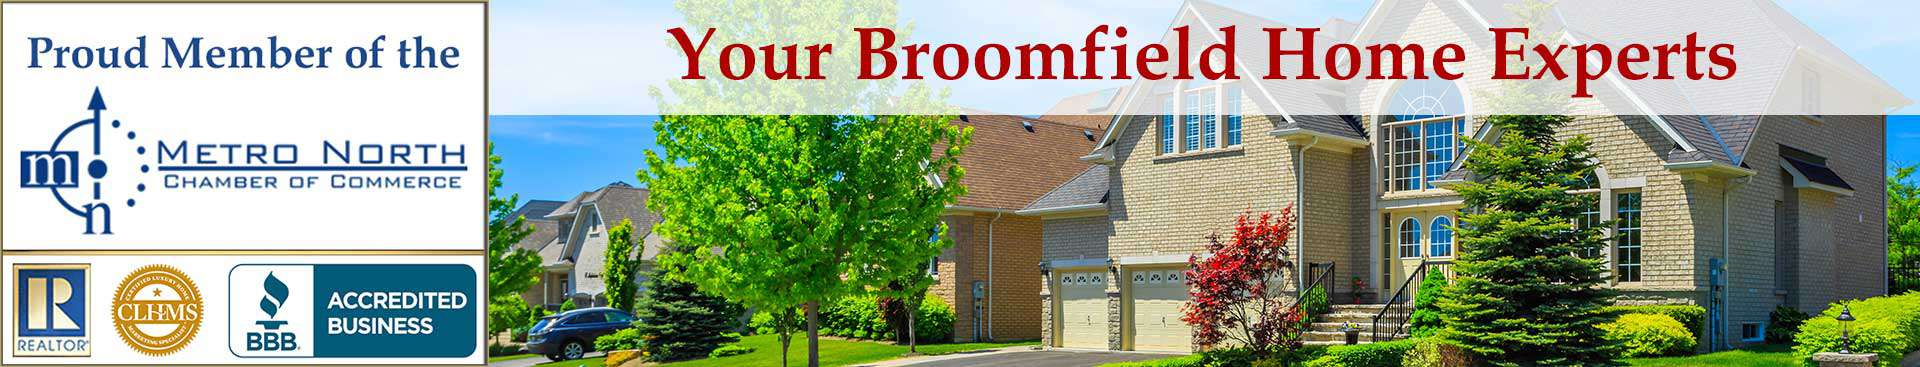 Broomfield CO Organizational Banner